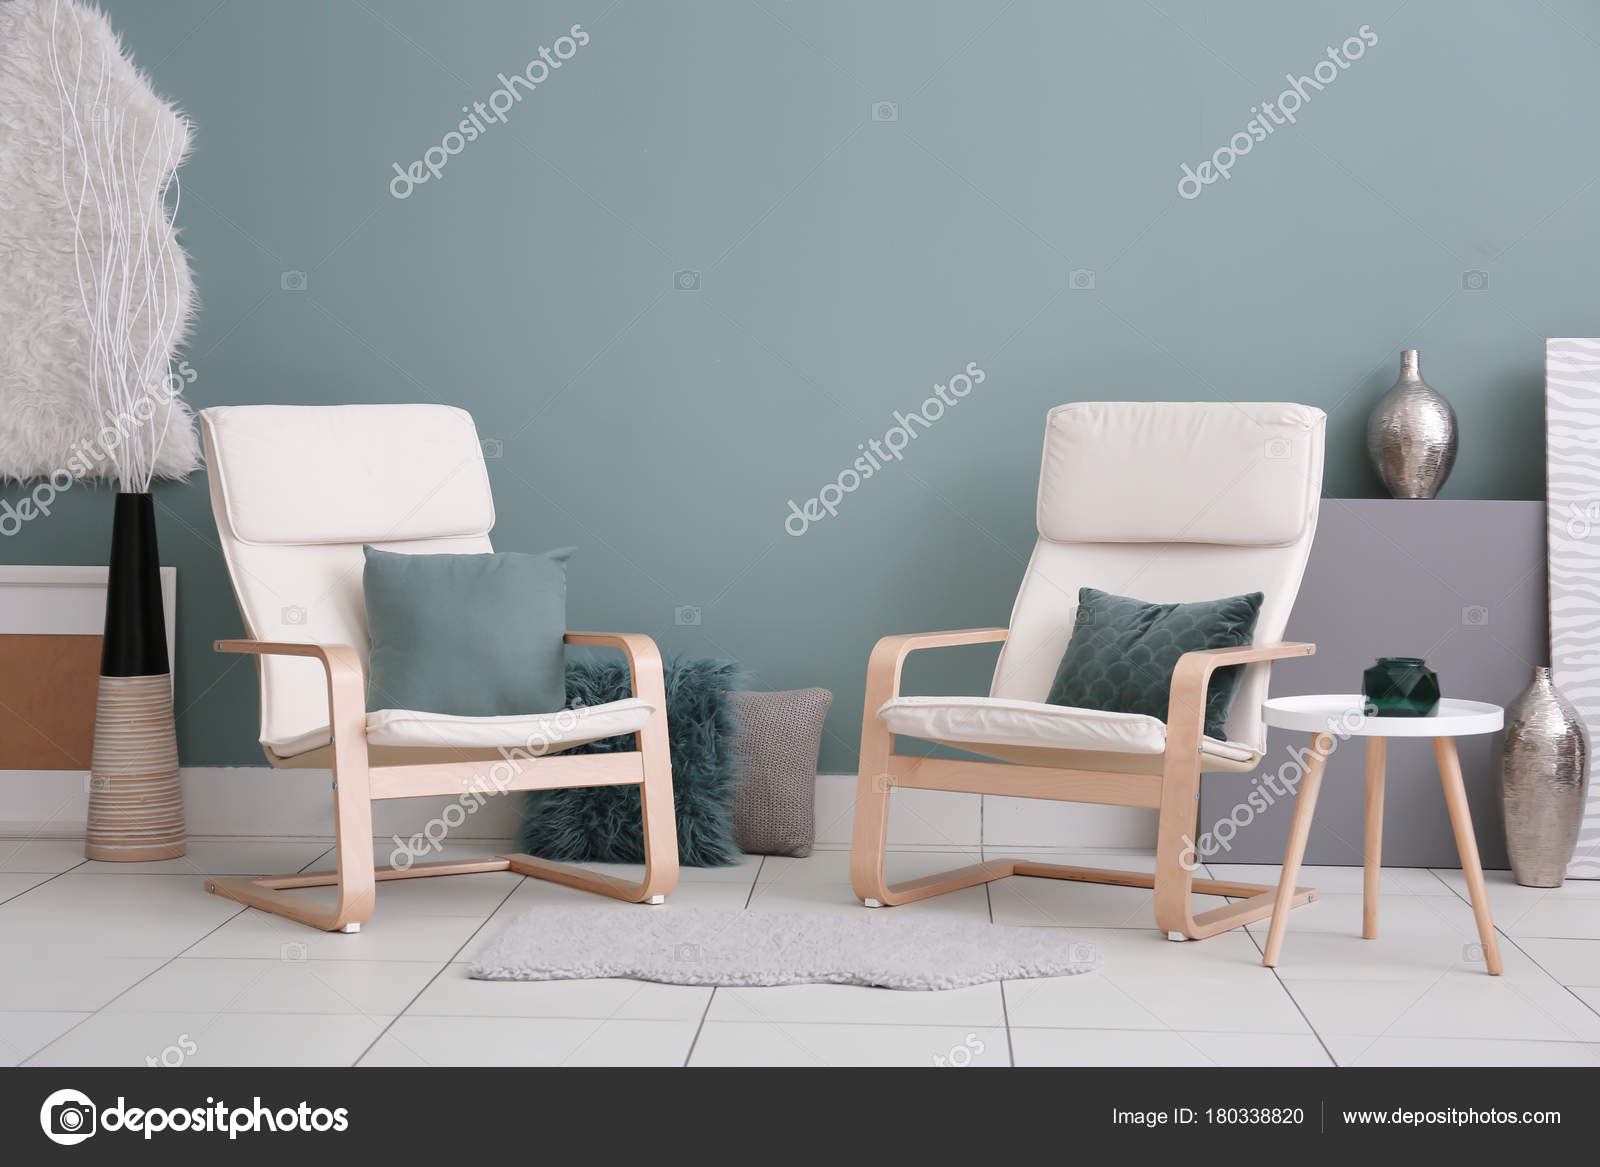 depositphotos stock photo fortable armchairs modern living room